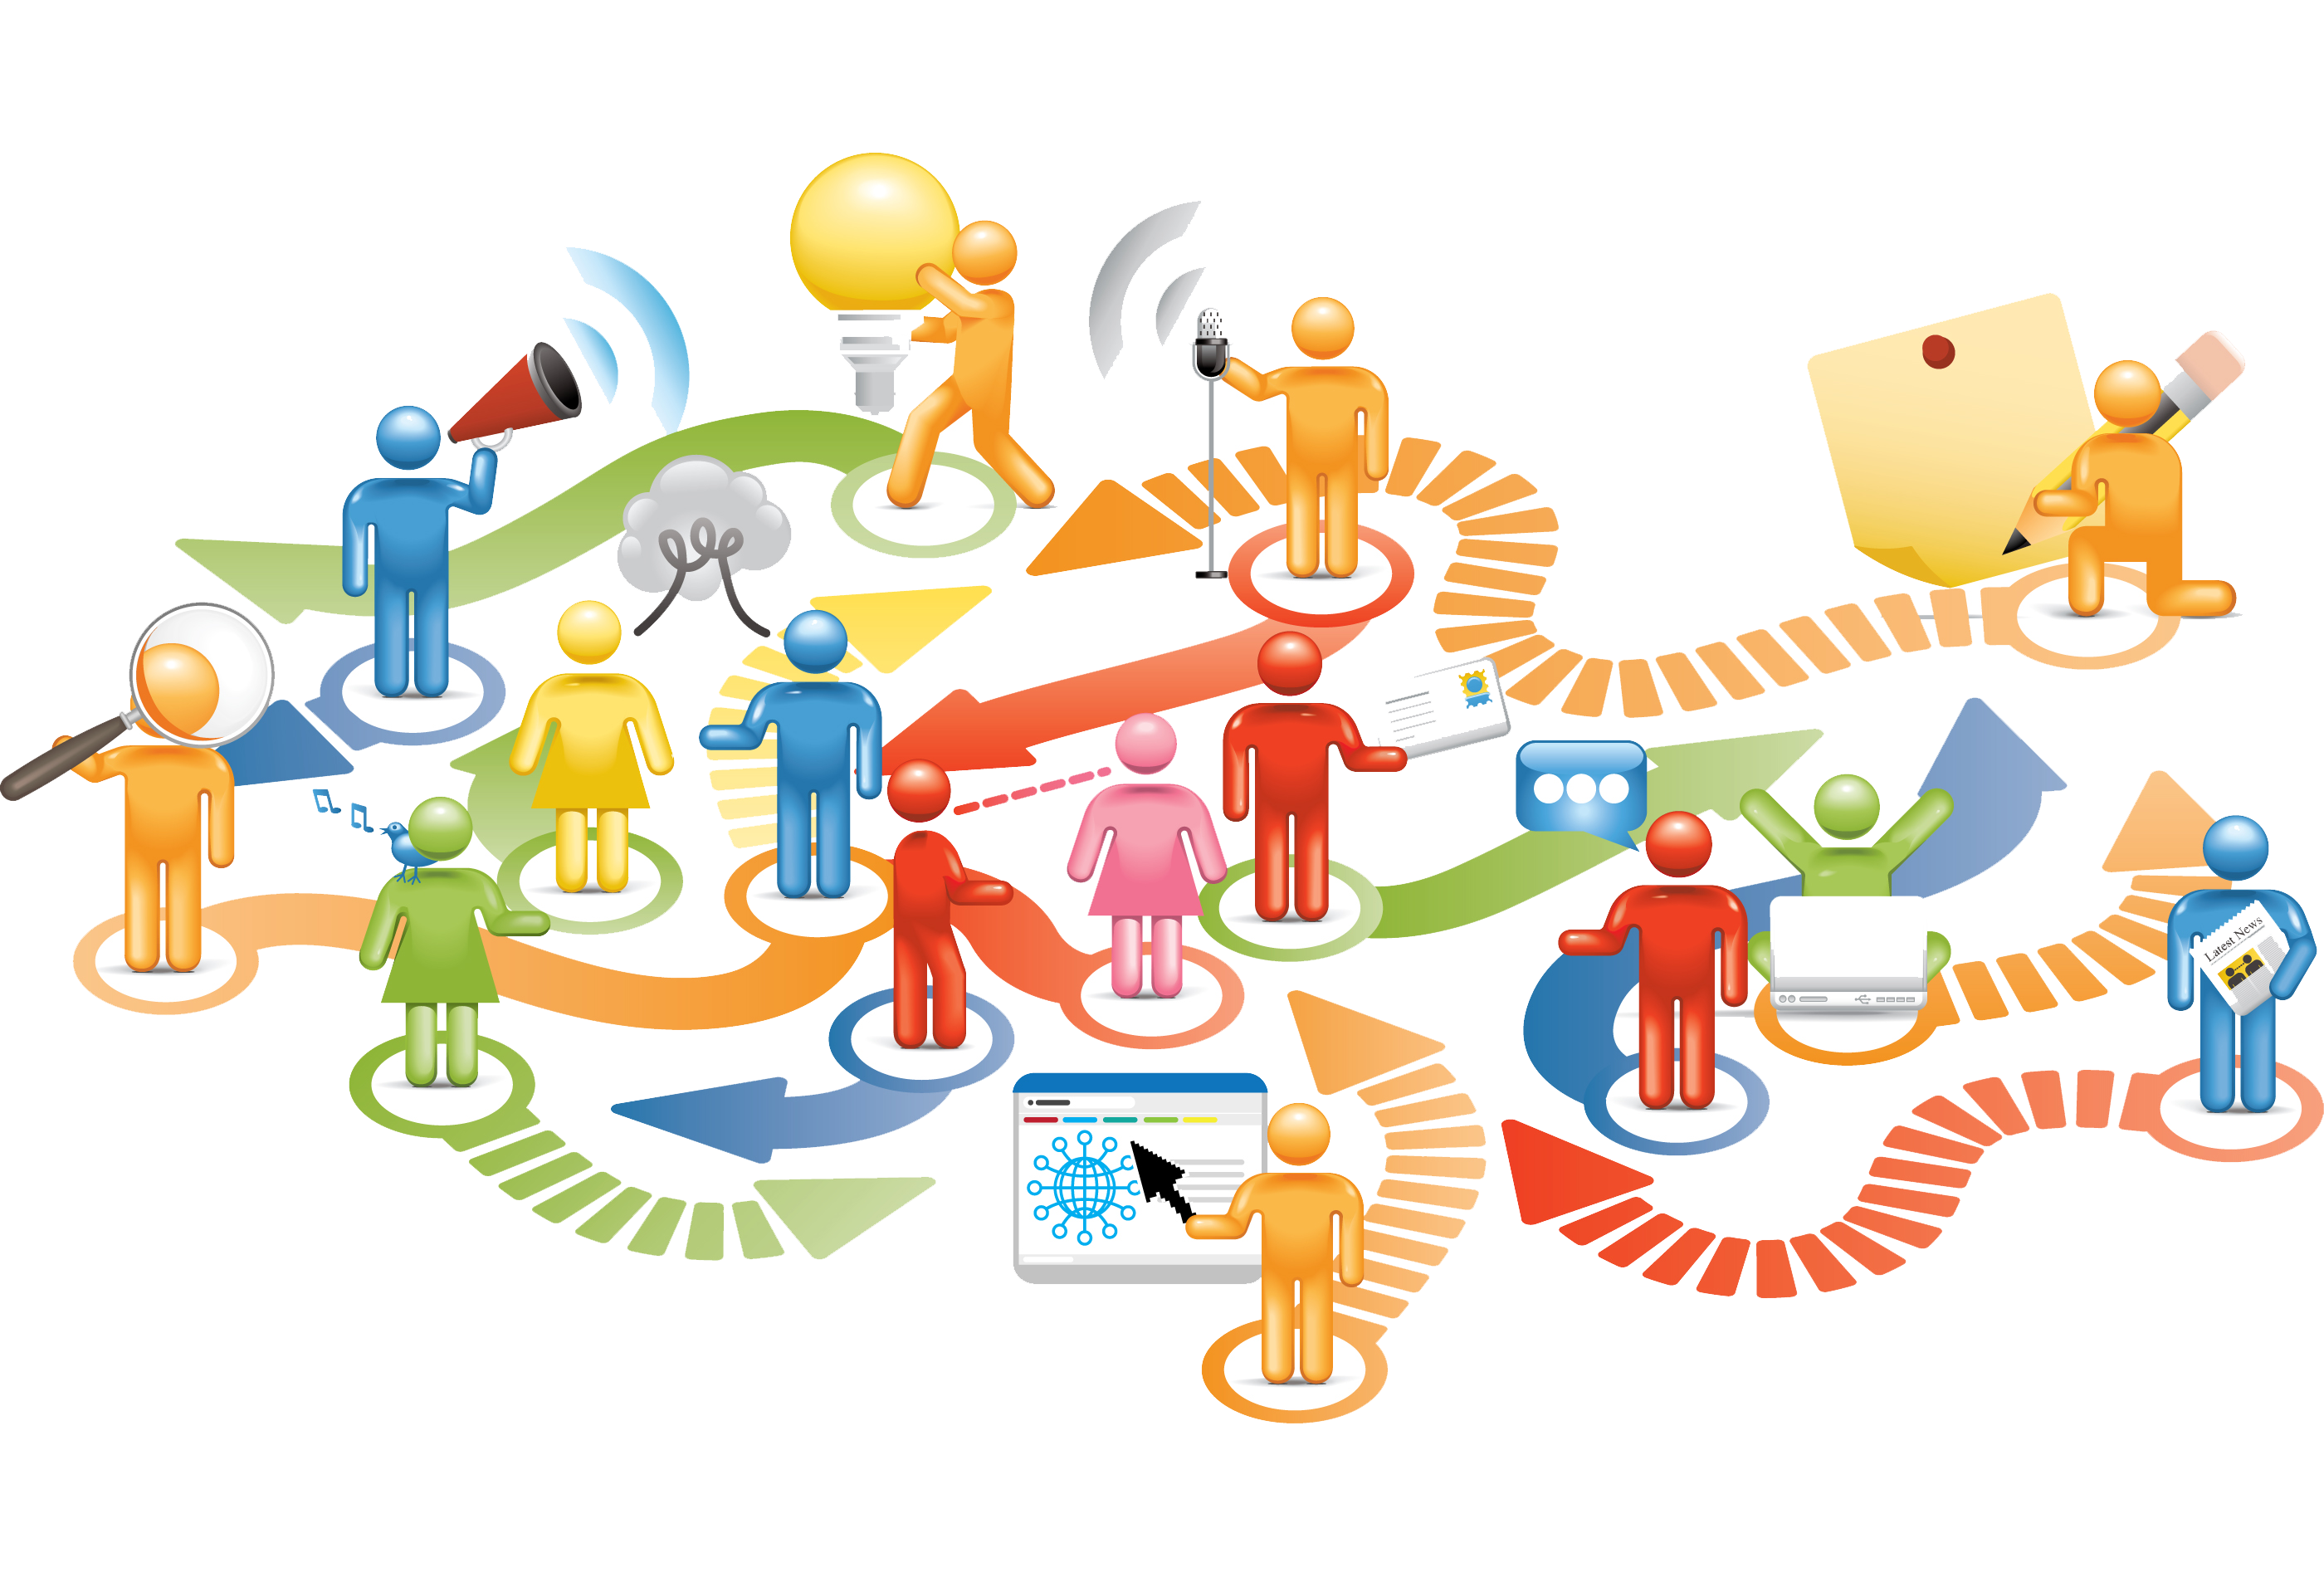 Conference clipart external communication. The importance of internal